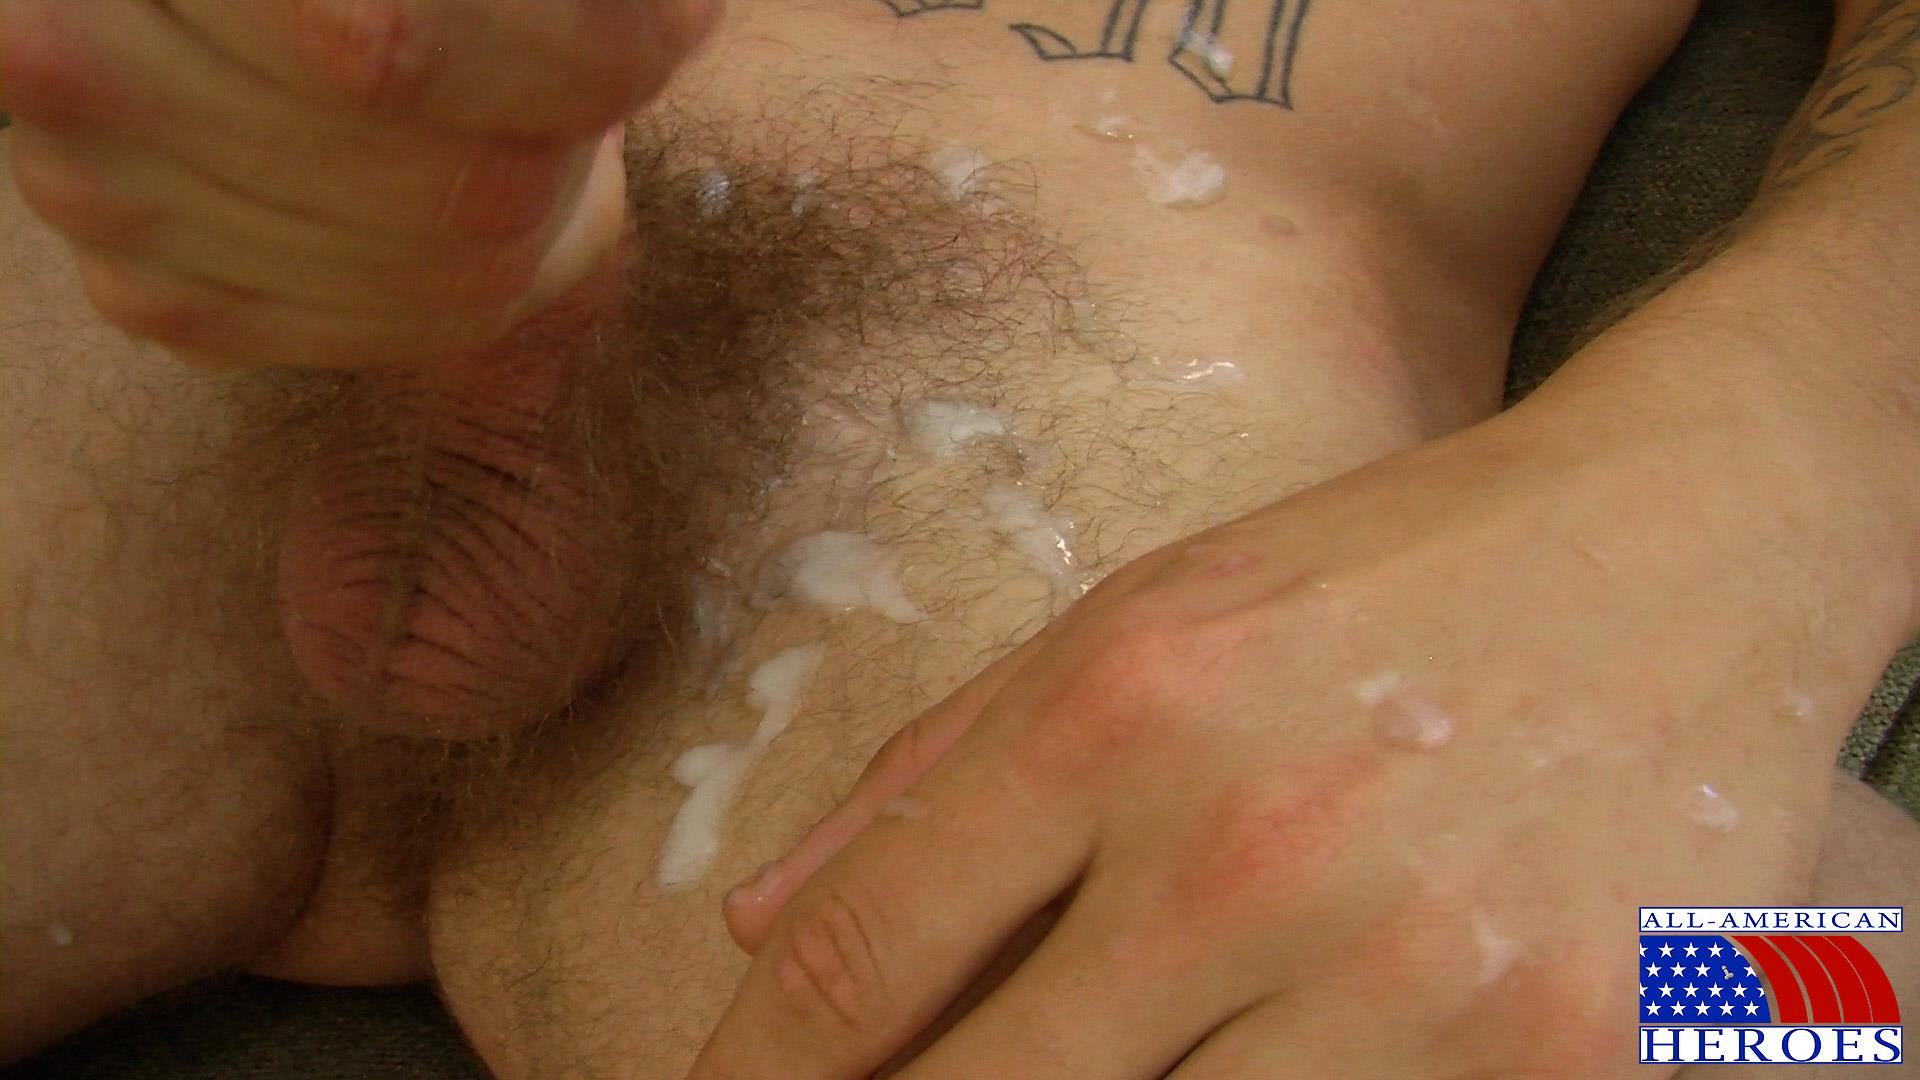 All-American-Heroes-US-Army-Specialist-Clark-Jerking-His-Big-Hairy-Cock-Amateur-Gay-Porn-15 US Army Specialist Masturbating His Hairy Curved Cock